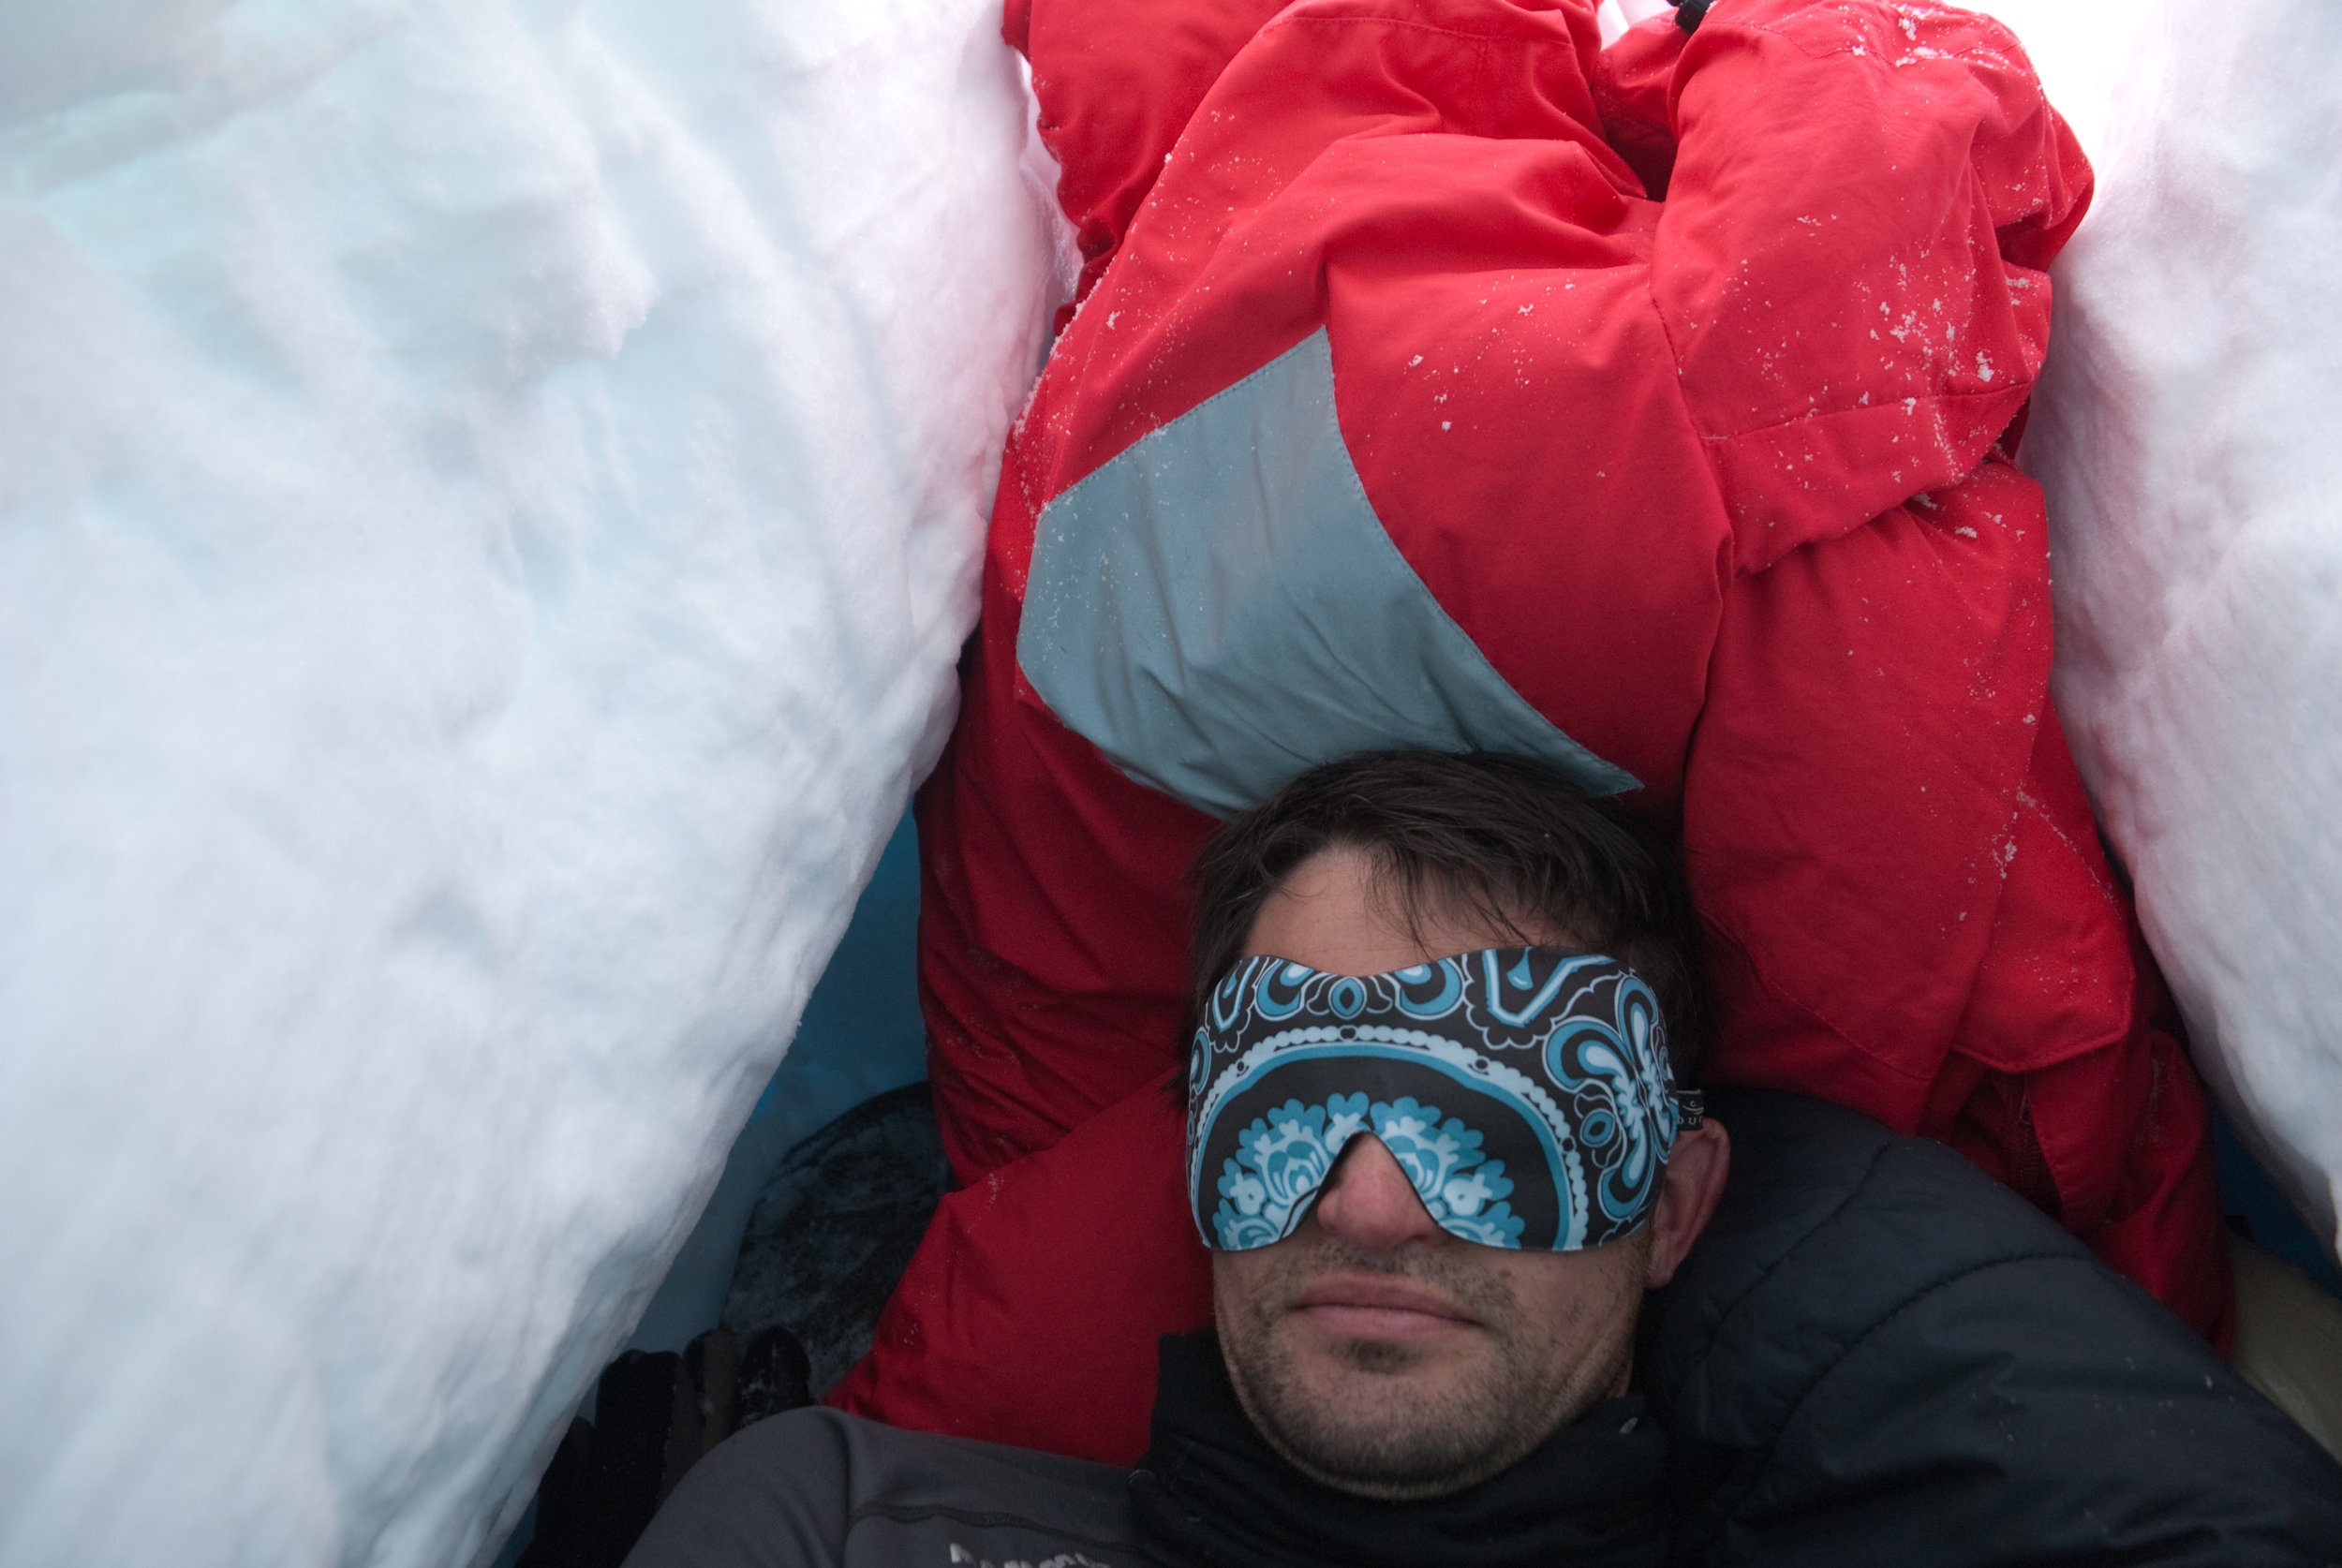 A camper uses a face mask to help him sleep. Image credit:    brookpeterson   /   Creative Commons